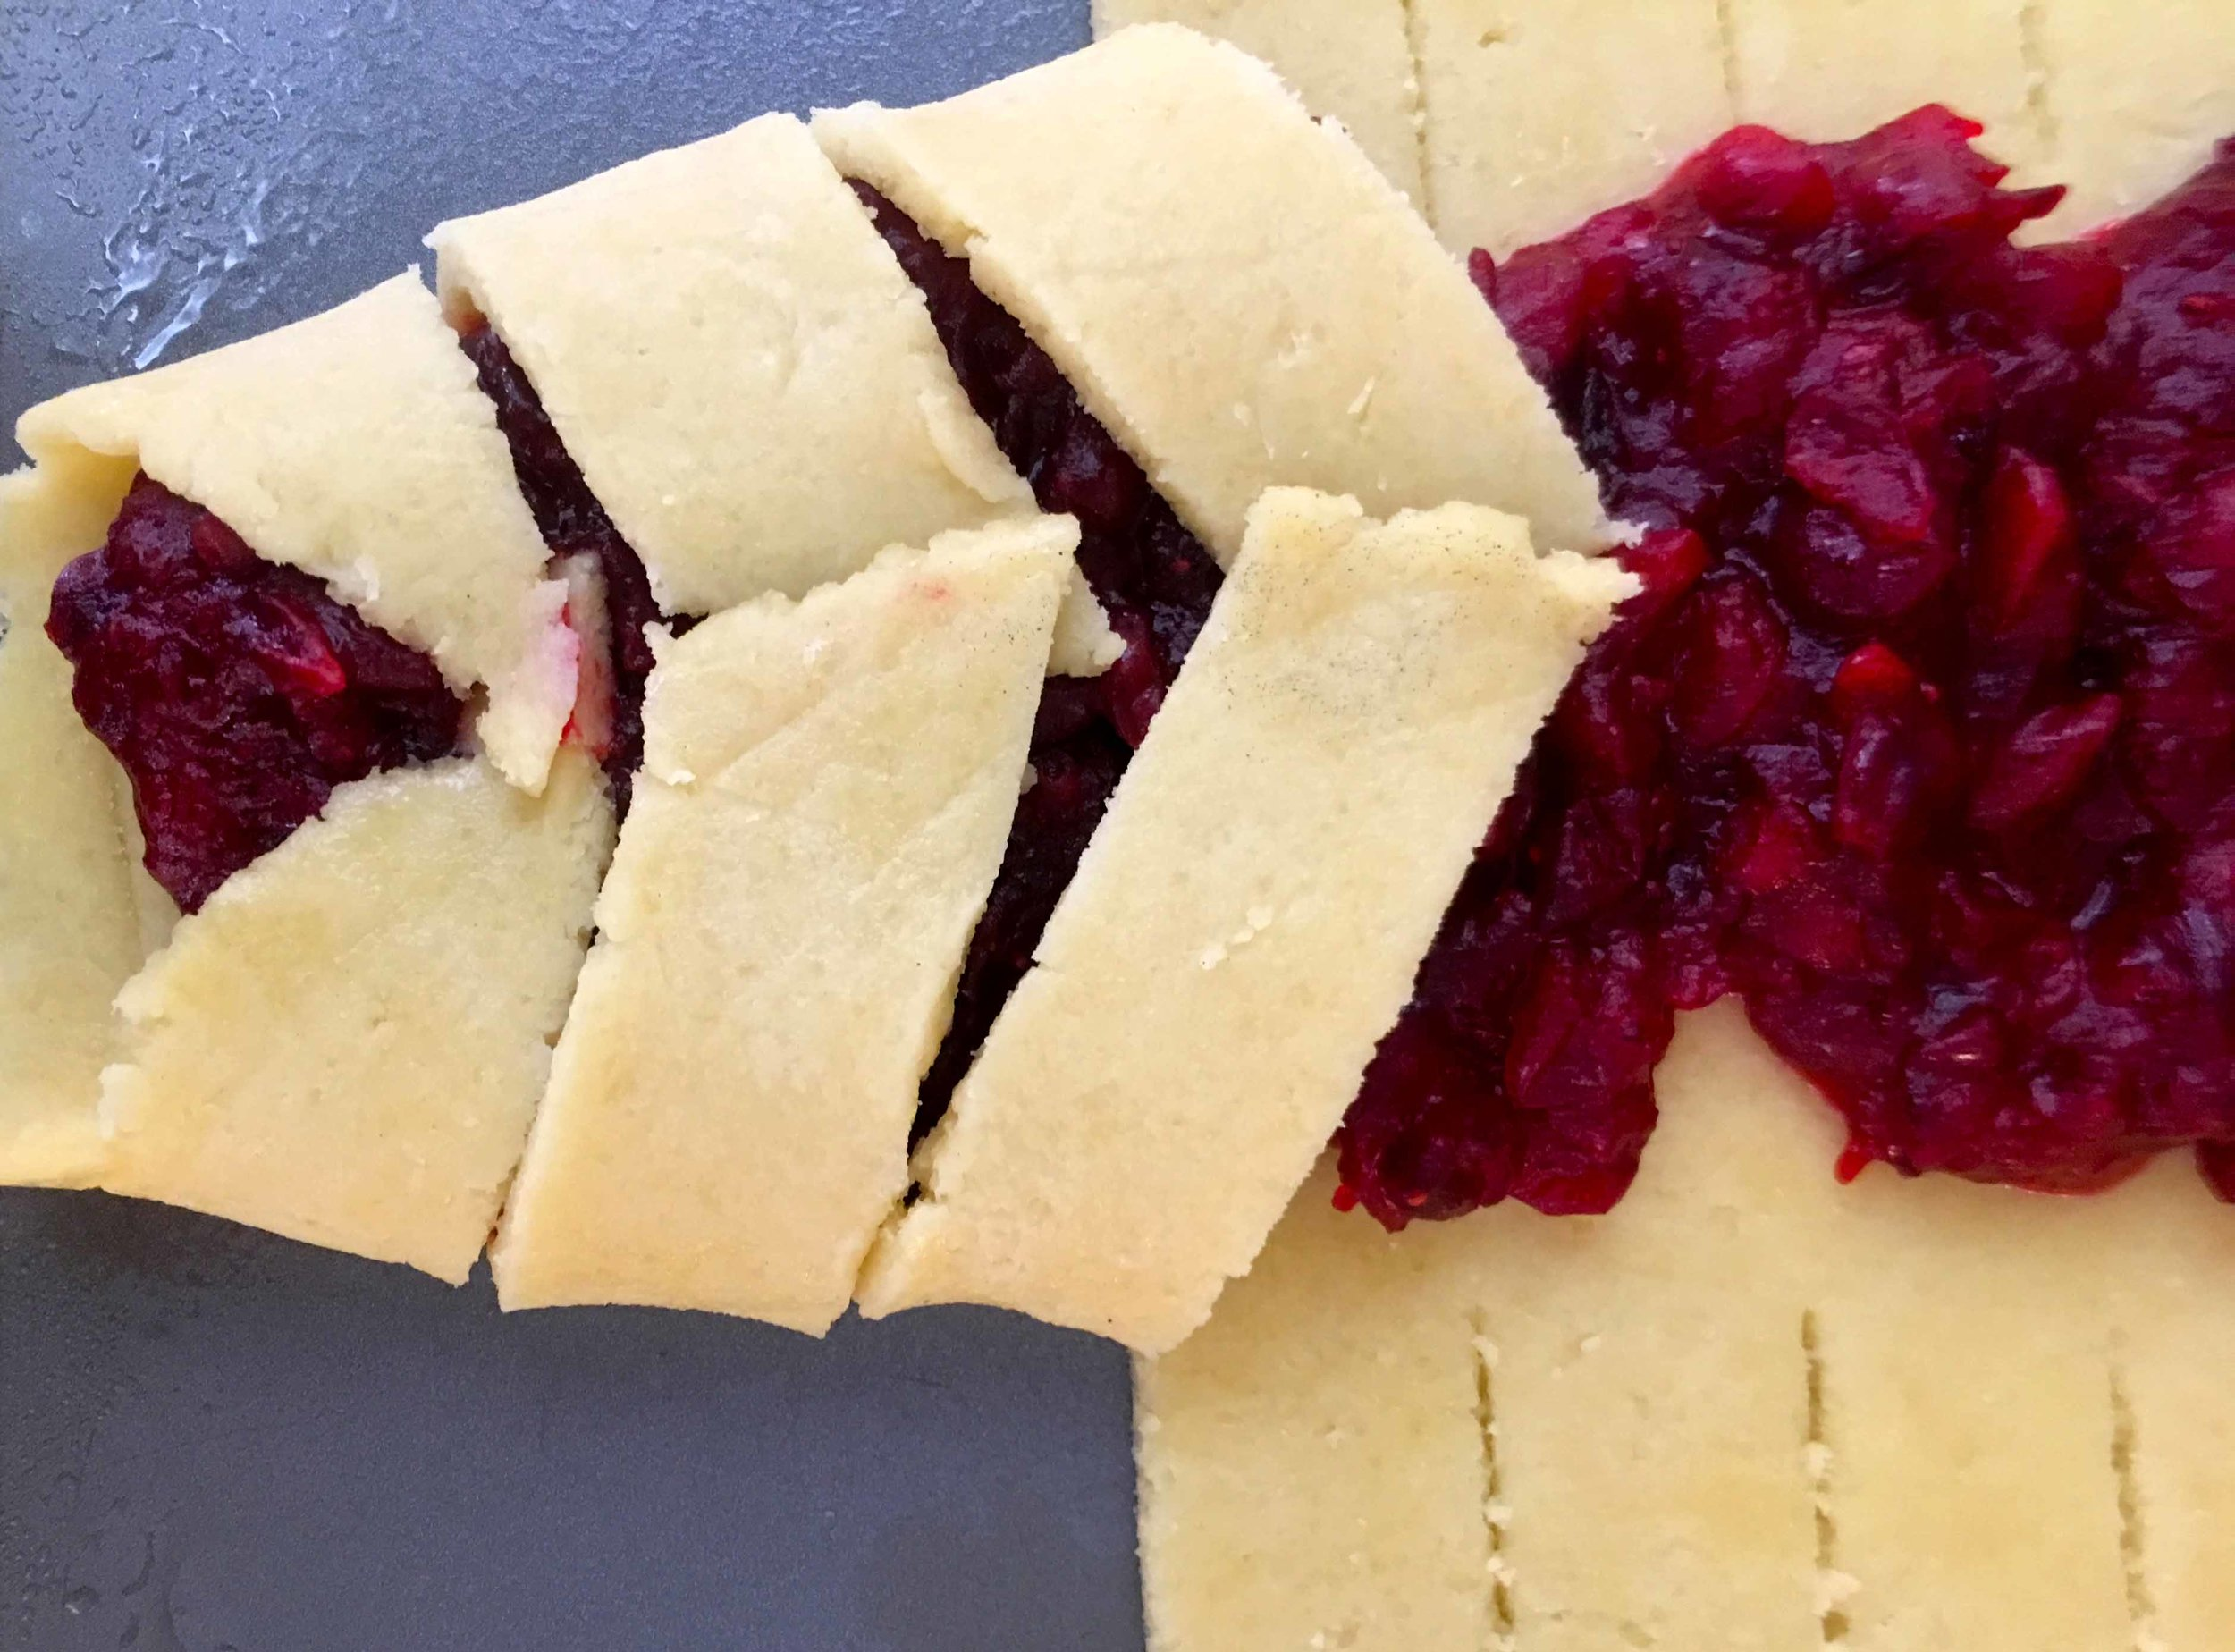 Cut 1 inch thick strips around the outer edges of the pastry and fold them over the filling. Seal the end of the pastry and cut off any overage.